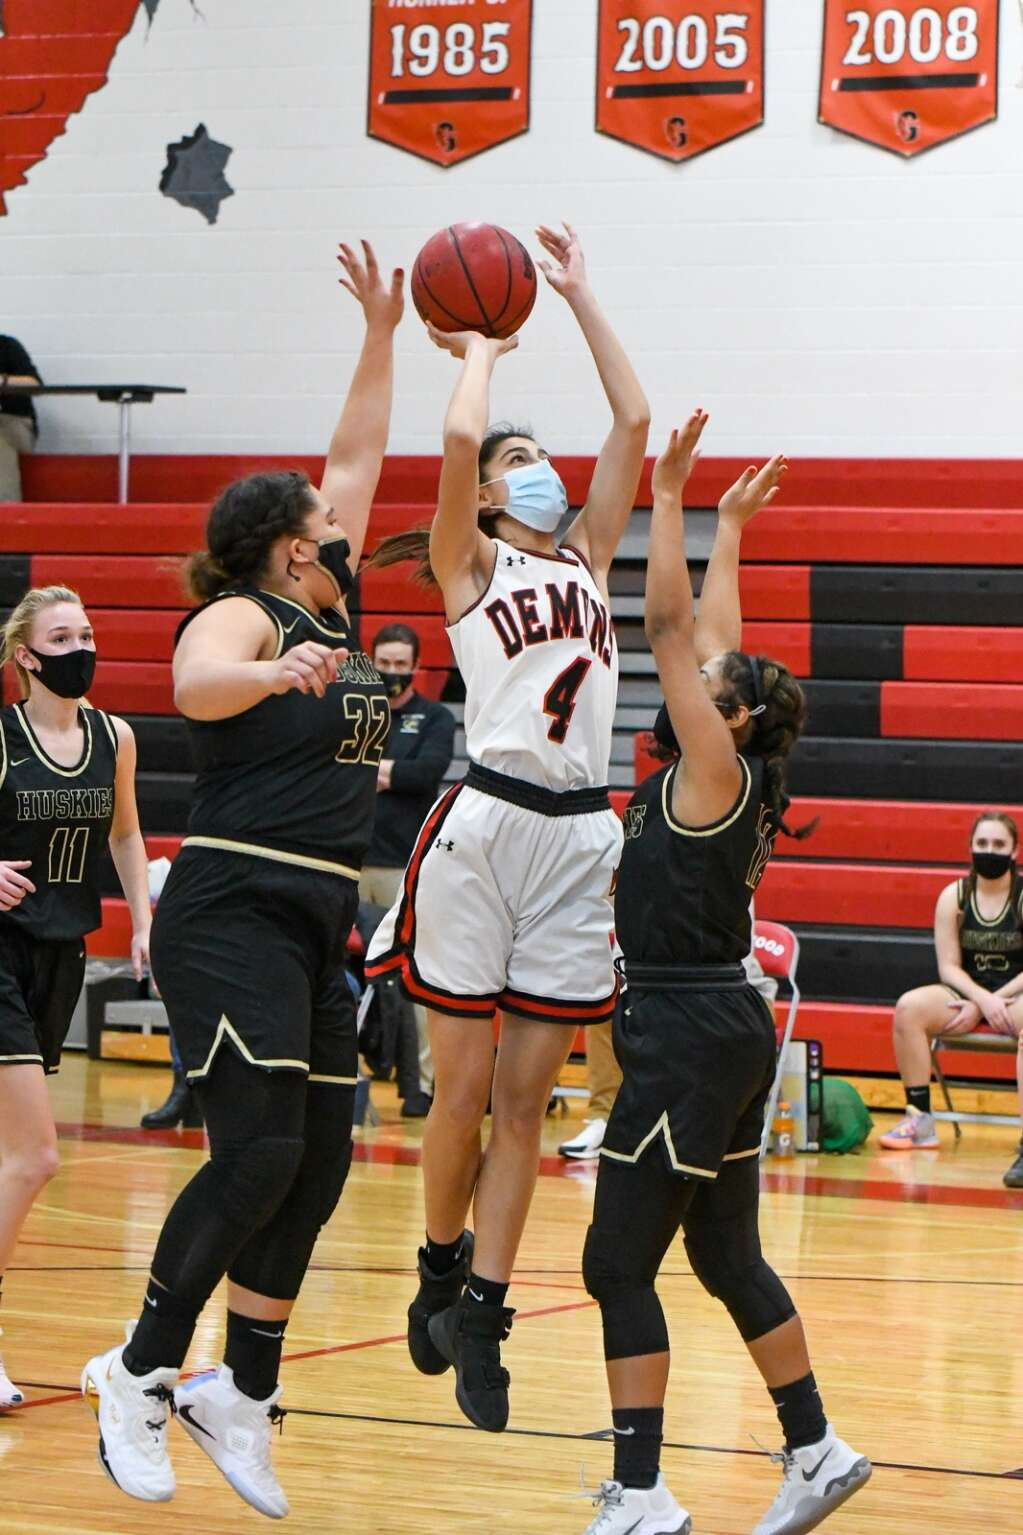 Glenwood Springs Demon Miah Suarez leaps through the defending Battle Mountain Huskies during Thursday night's home game. |Chelsea Self / Post Independent